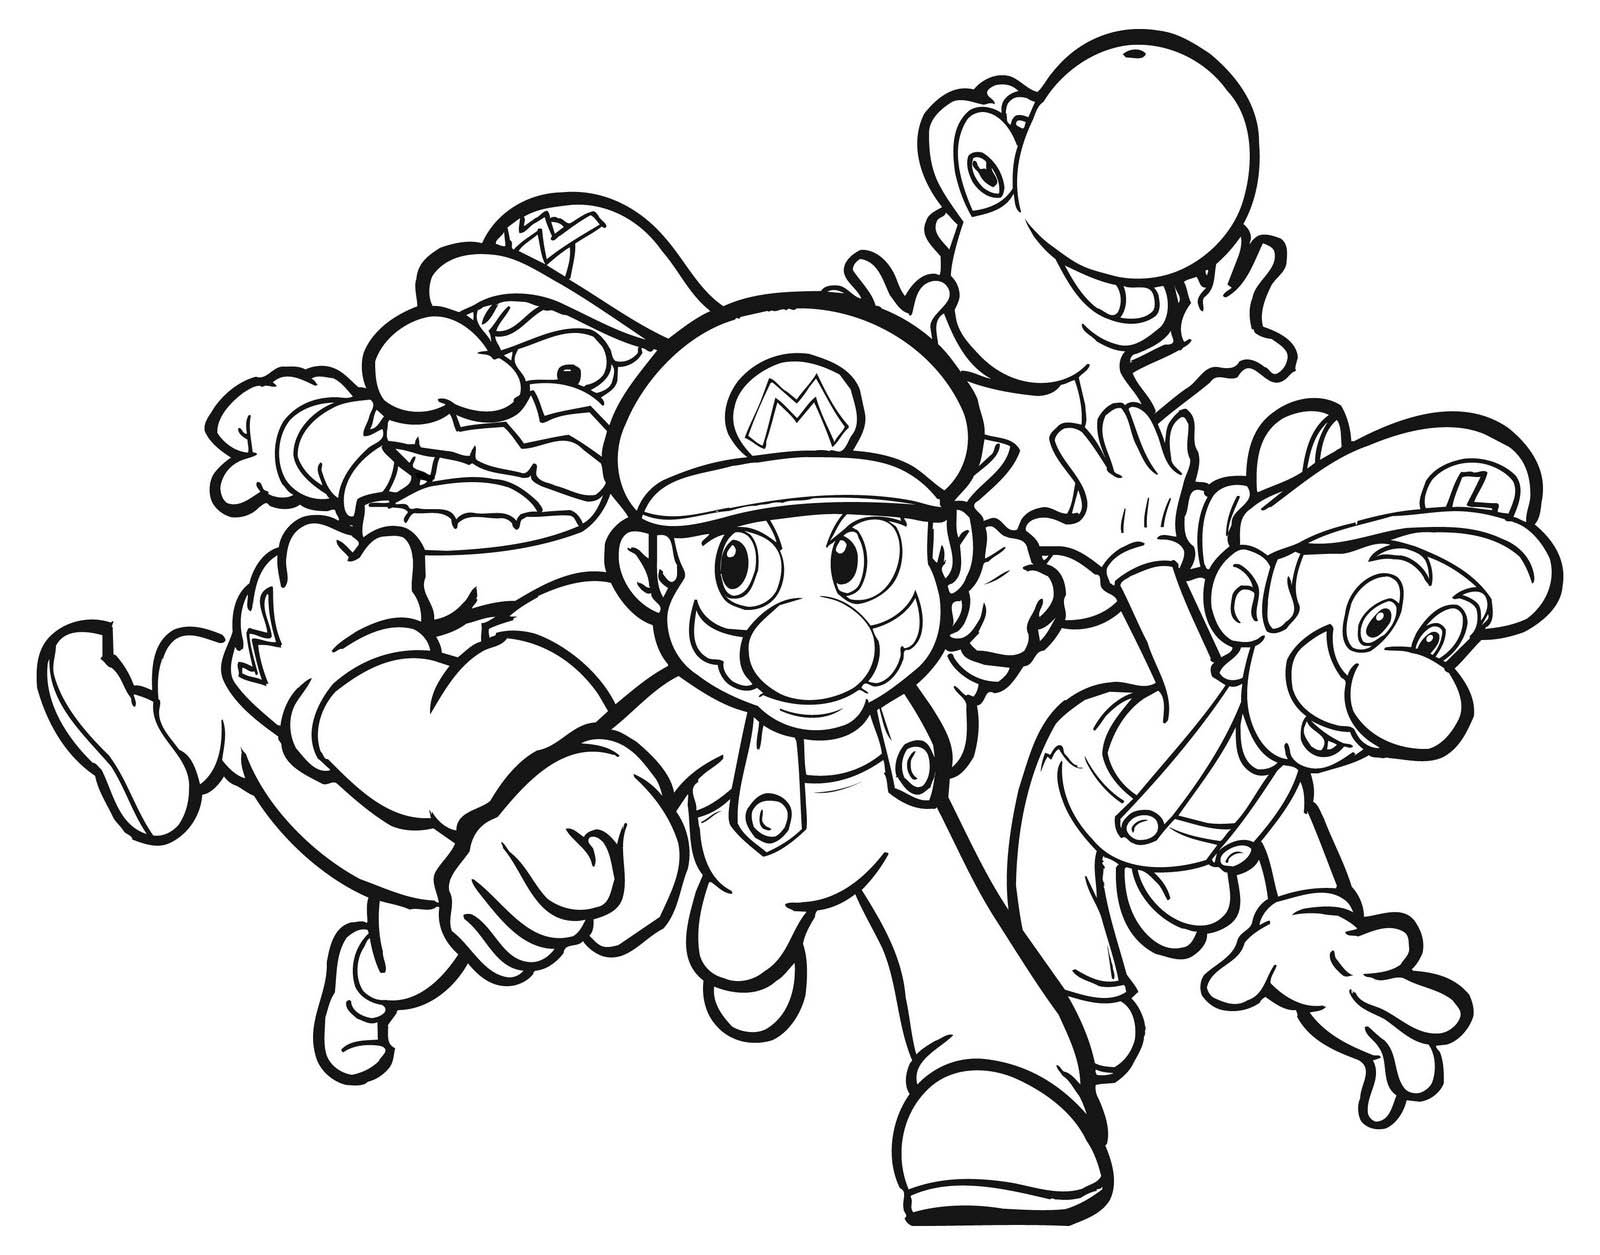 Free Mario Coloring Pages - Free Printable Mario Coloring Pages for Kids